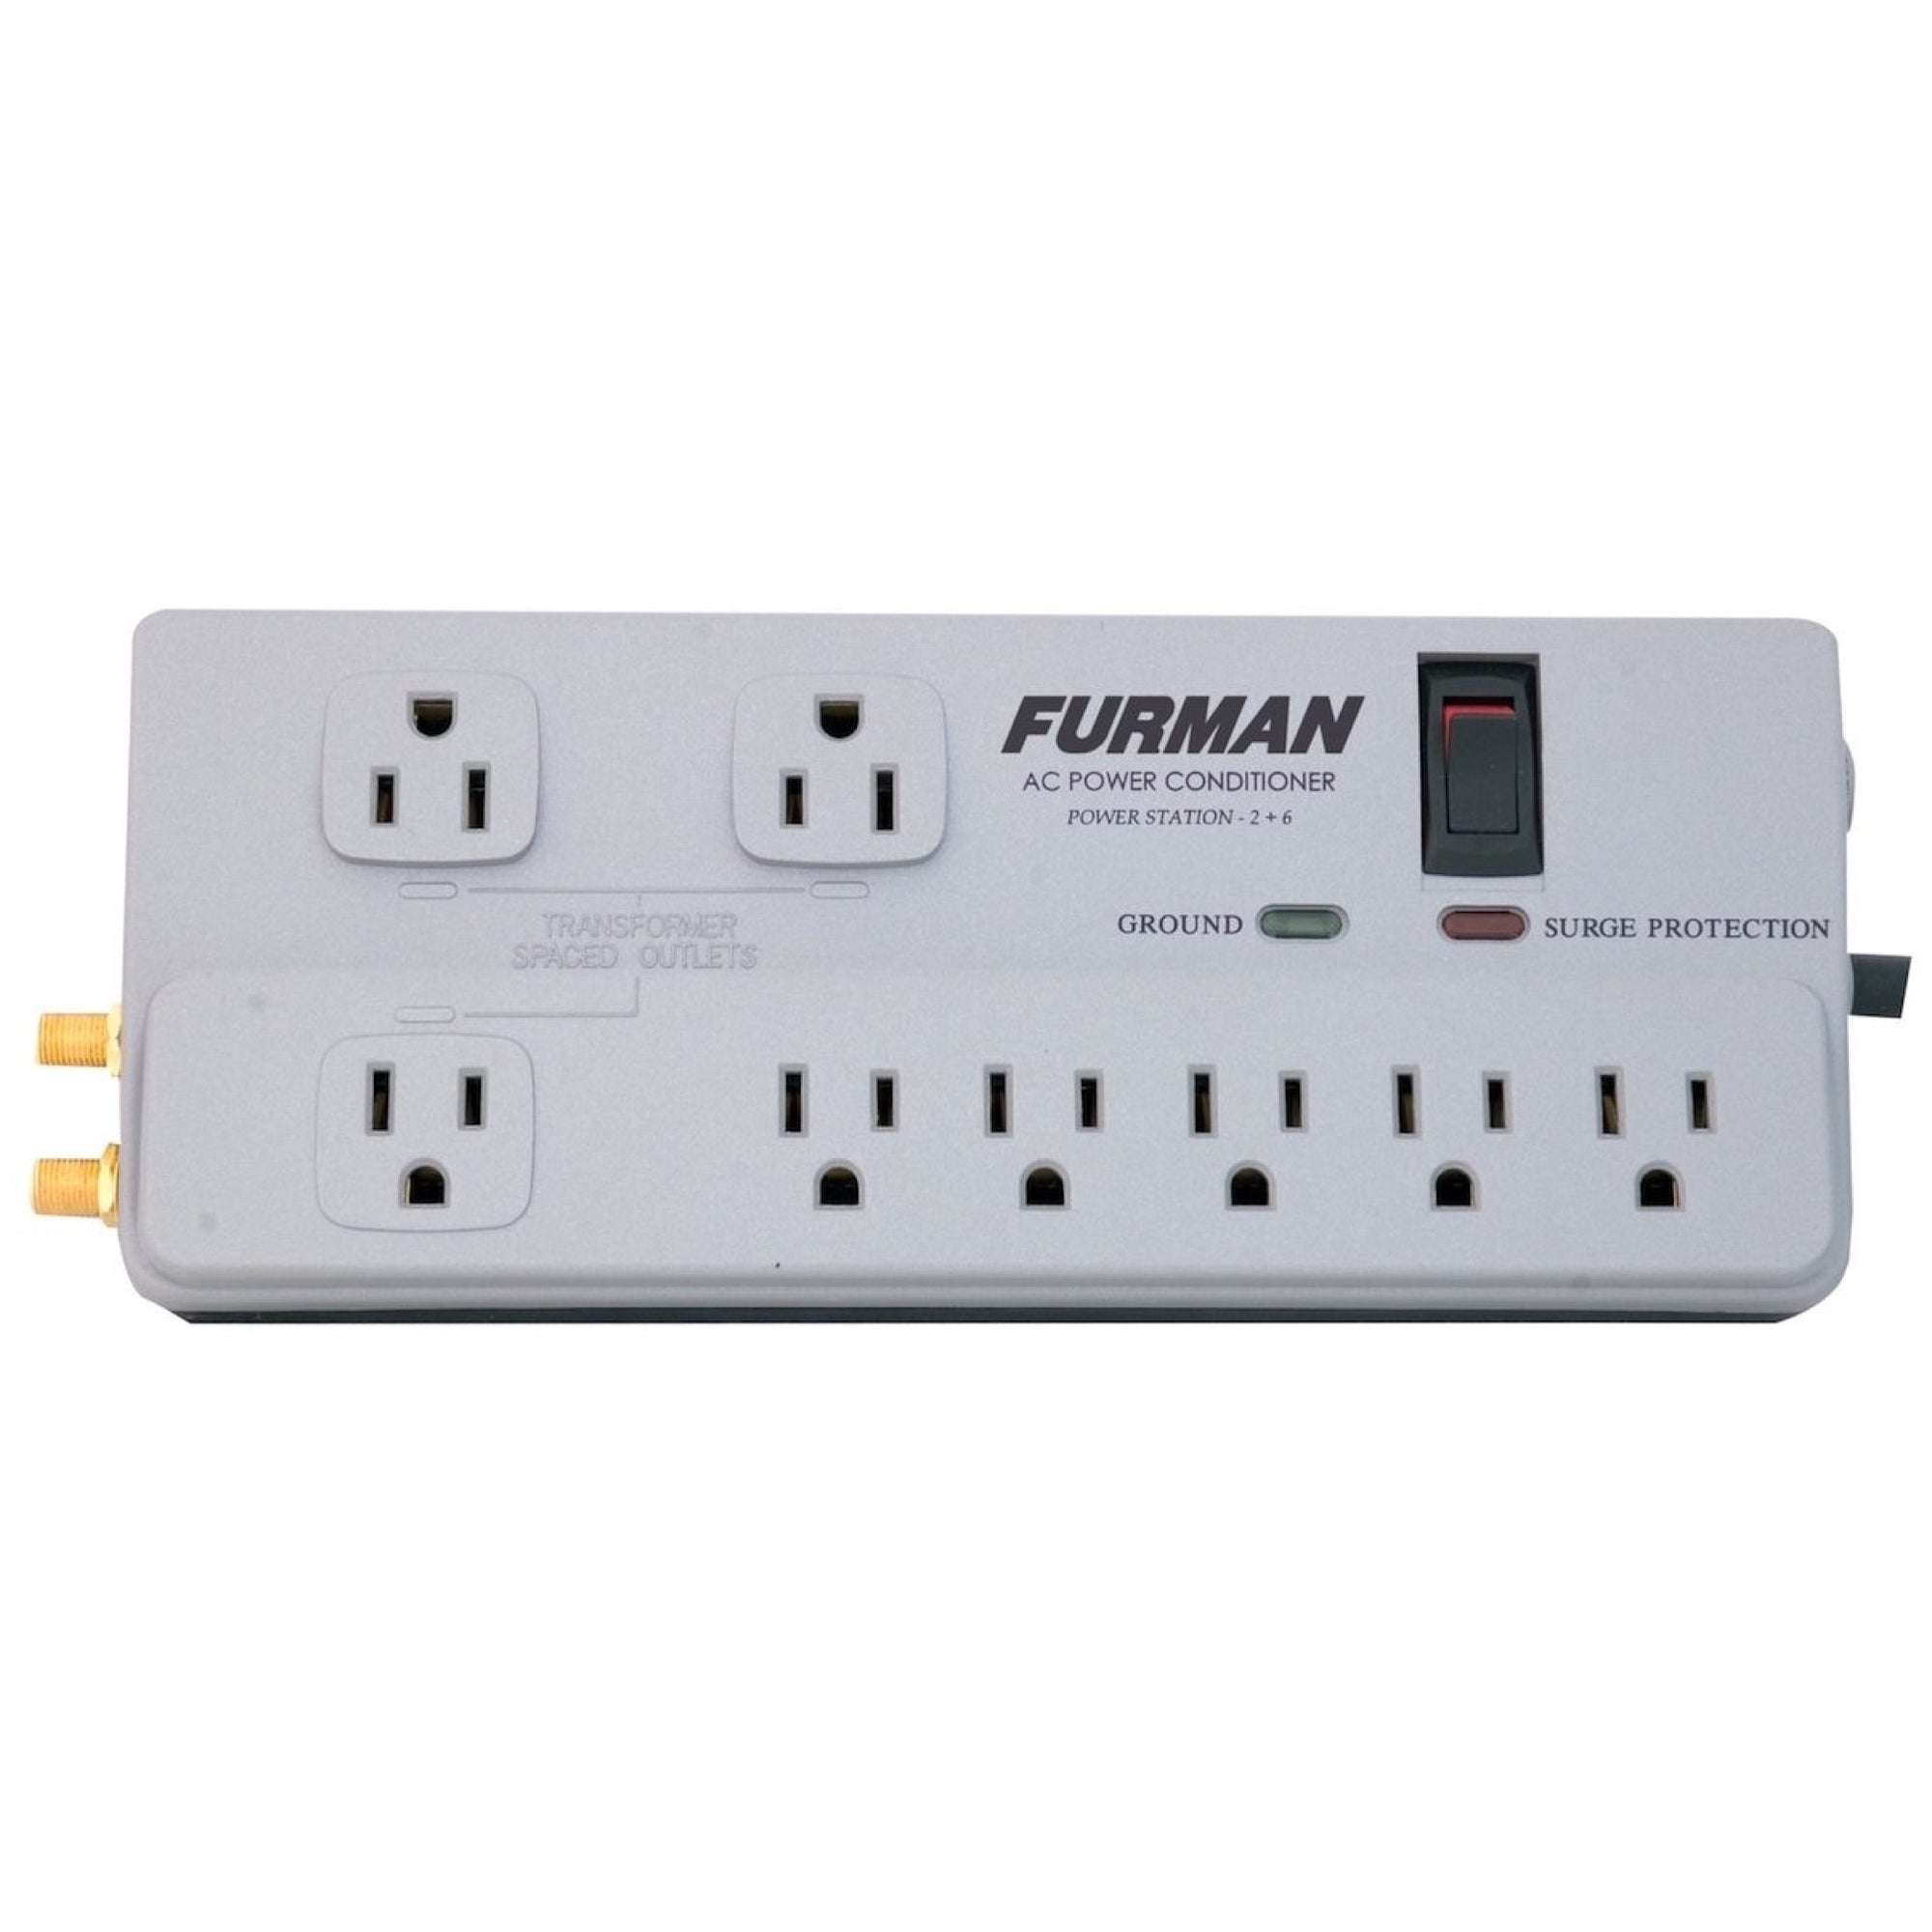 Furman PST-2 Plus 6 Power Station AC Power Conditioner